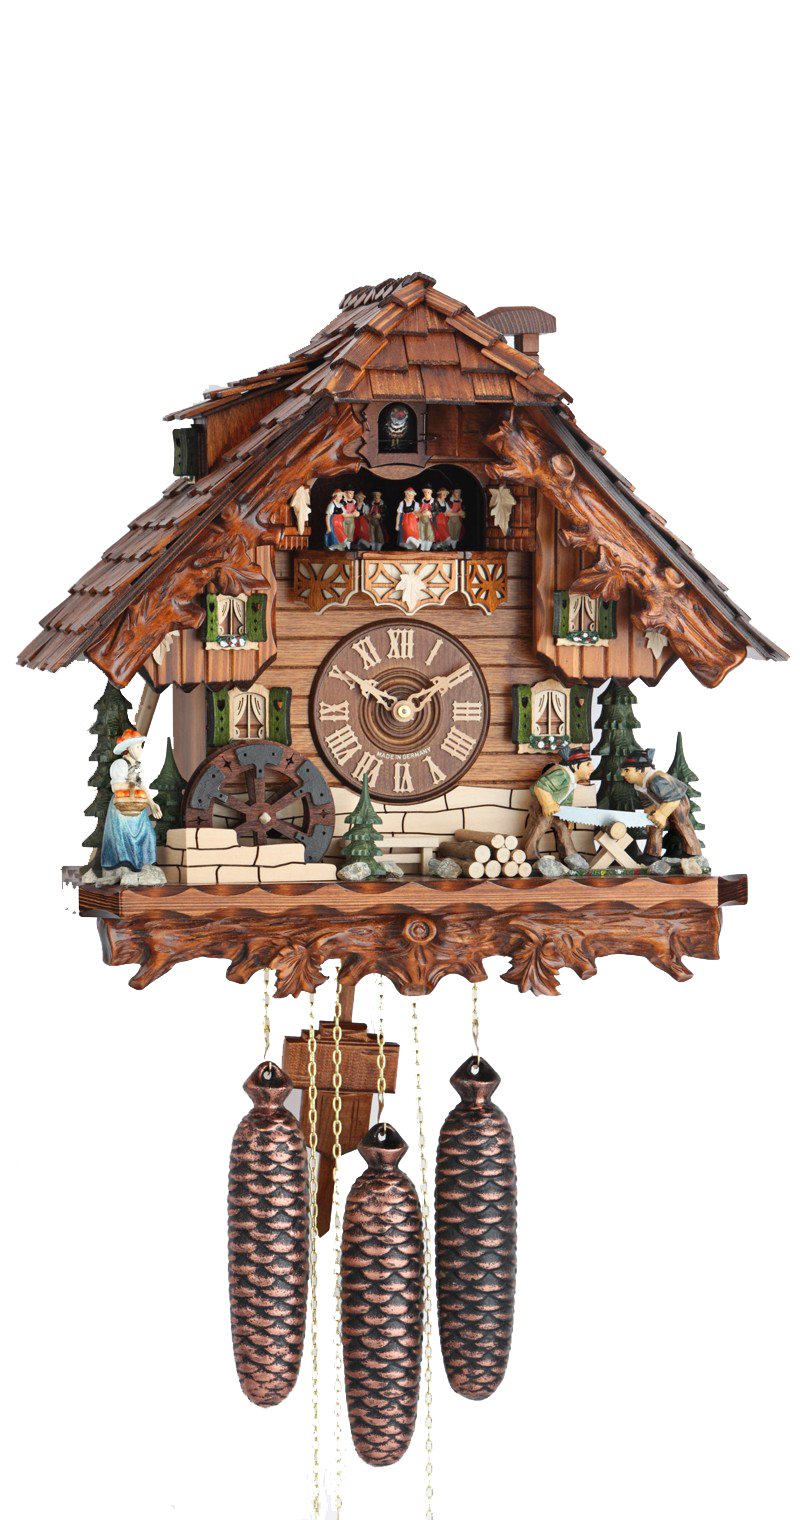 Cuckoo Clock Black Forest House Wood Chopper Wheel 8-Day Movement Music - Cuckoo Clock Meister